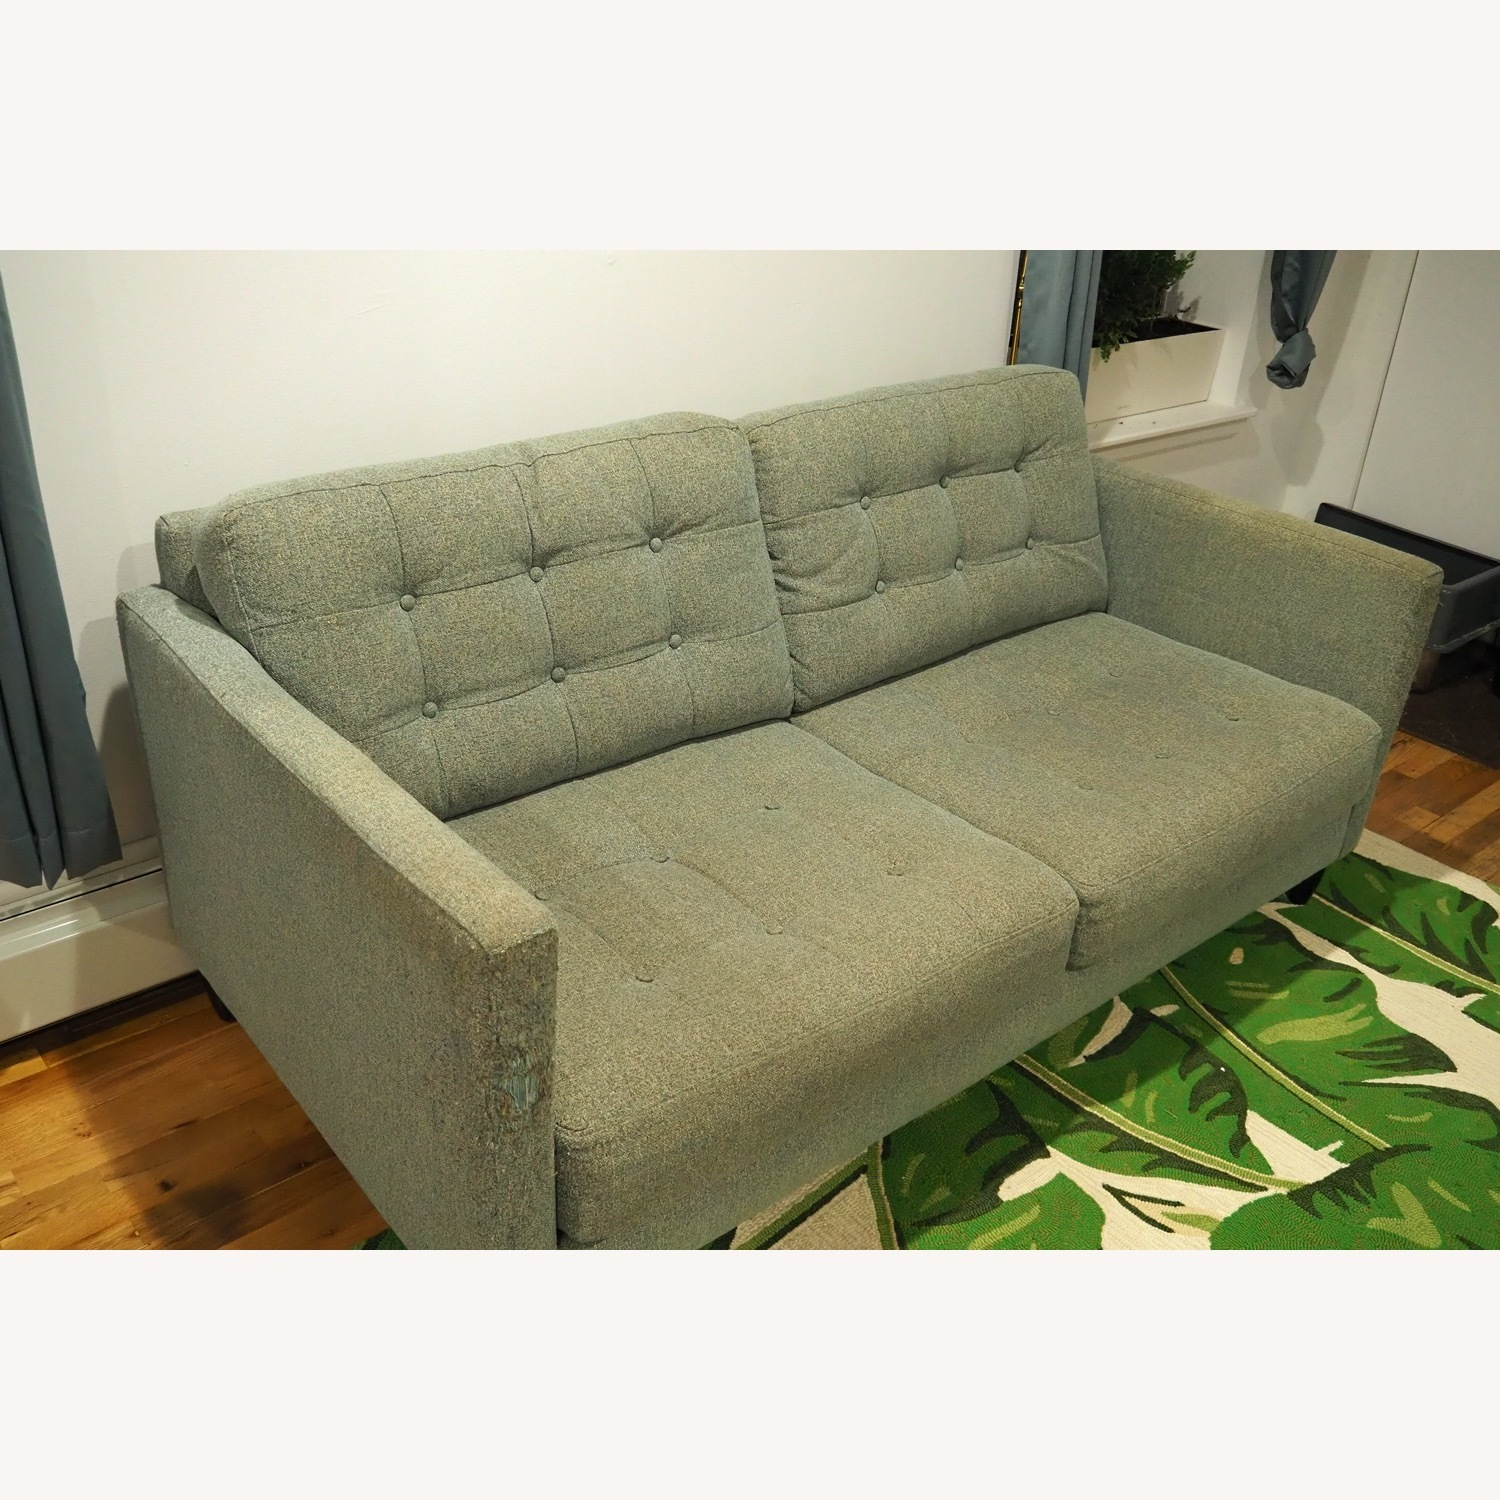 Younger Co The James Collection Apartment Sofa - image-3